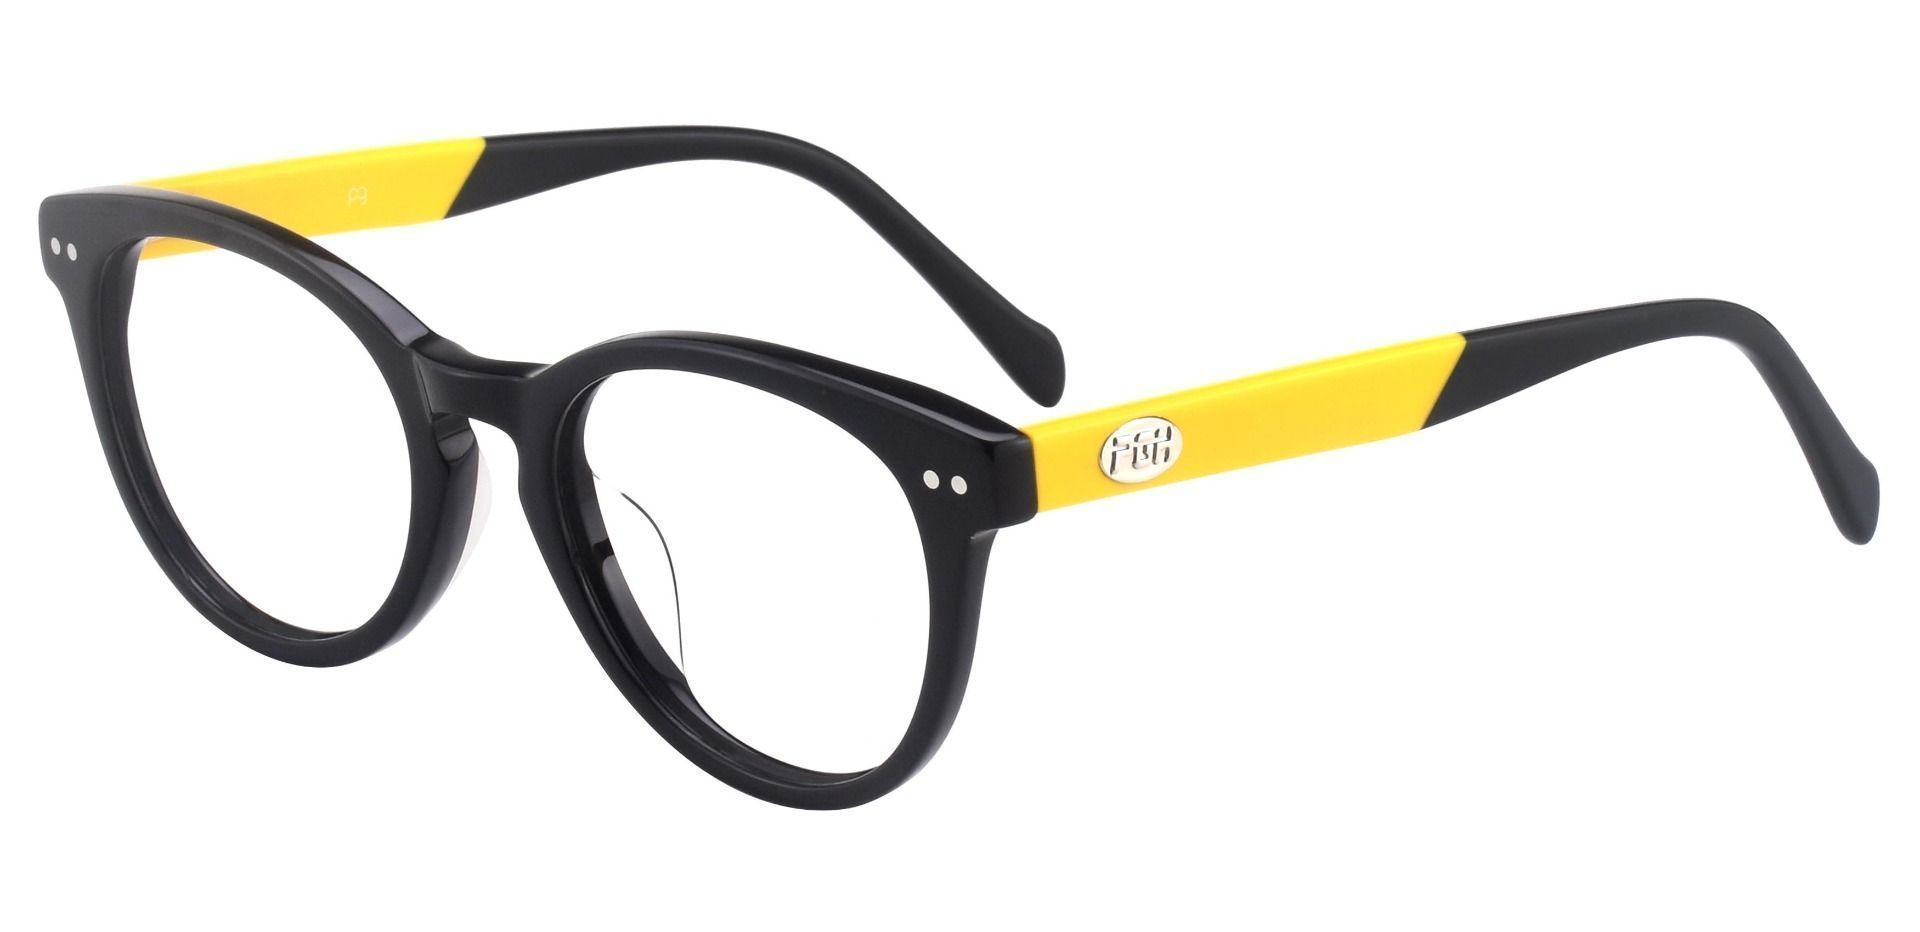 Oakland Oval Lined Bifocal Glasses - The Frame Is Black And Gold